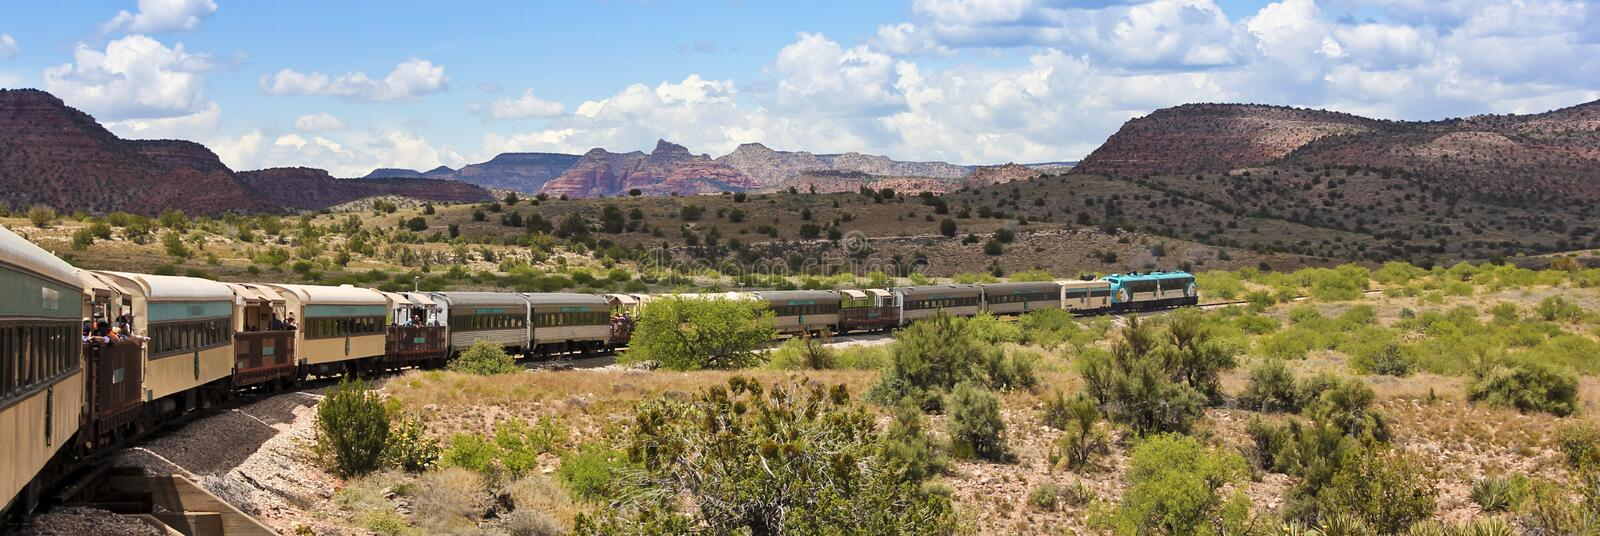 A View of the Verde Canyon Railroad Train, Clarkdale, AZ, USA stock image